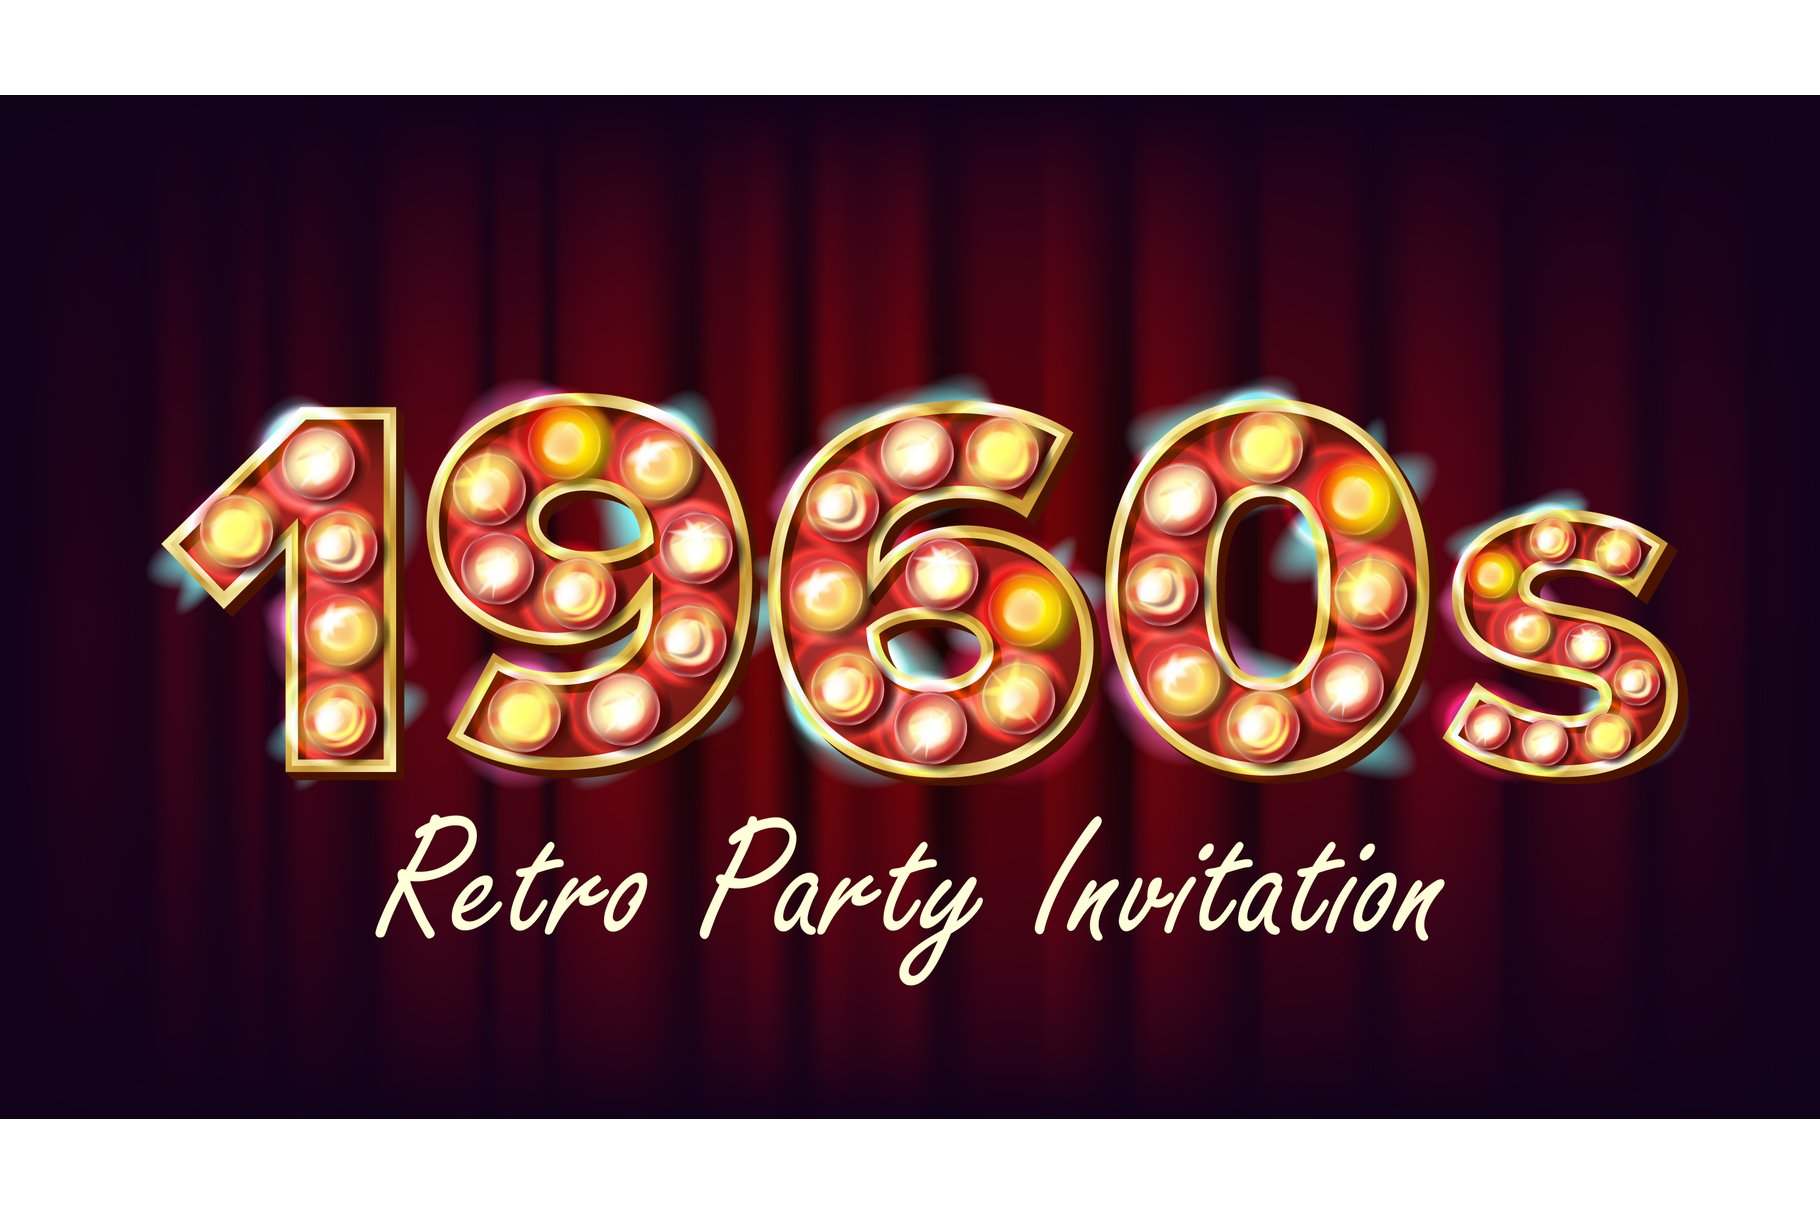 1960s Retro Party Invitation Vector. 1960 Style. Lamp Bulb. example image 1